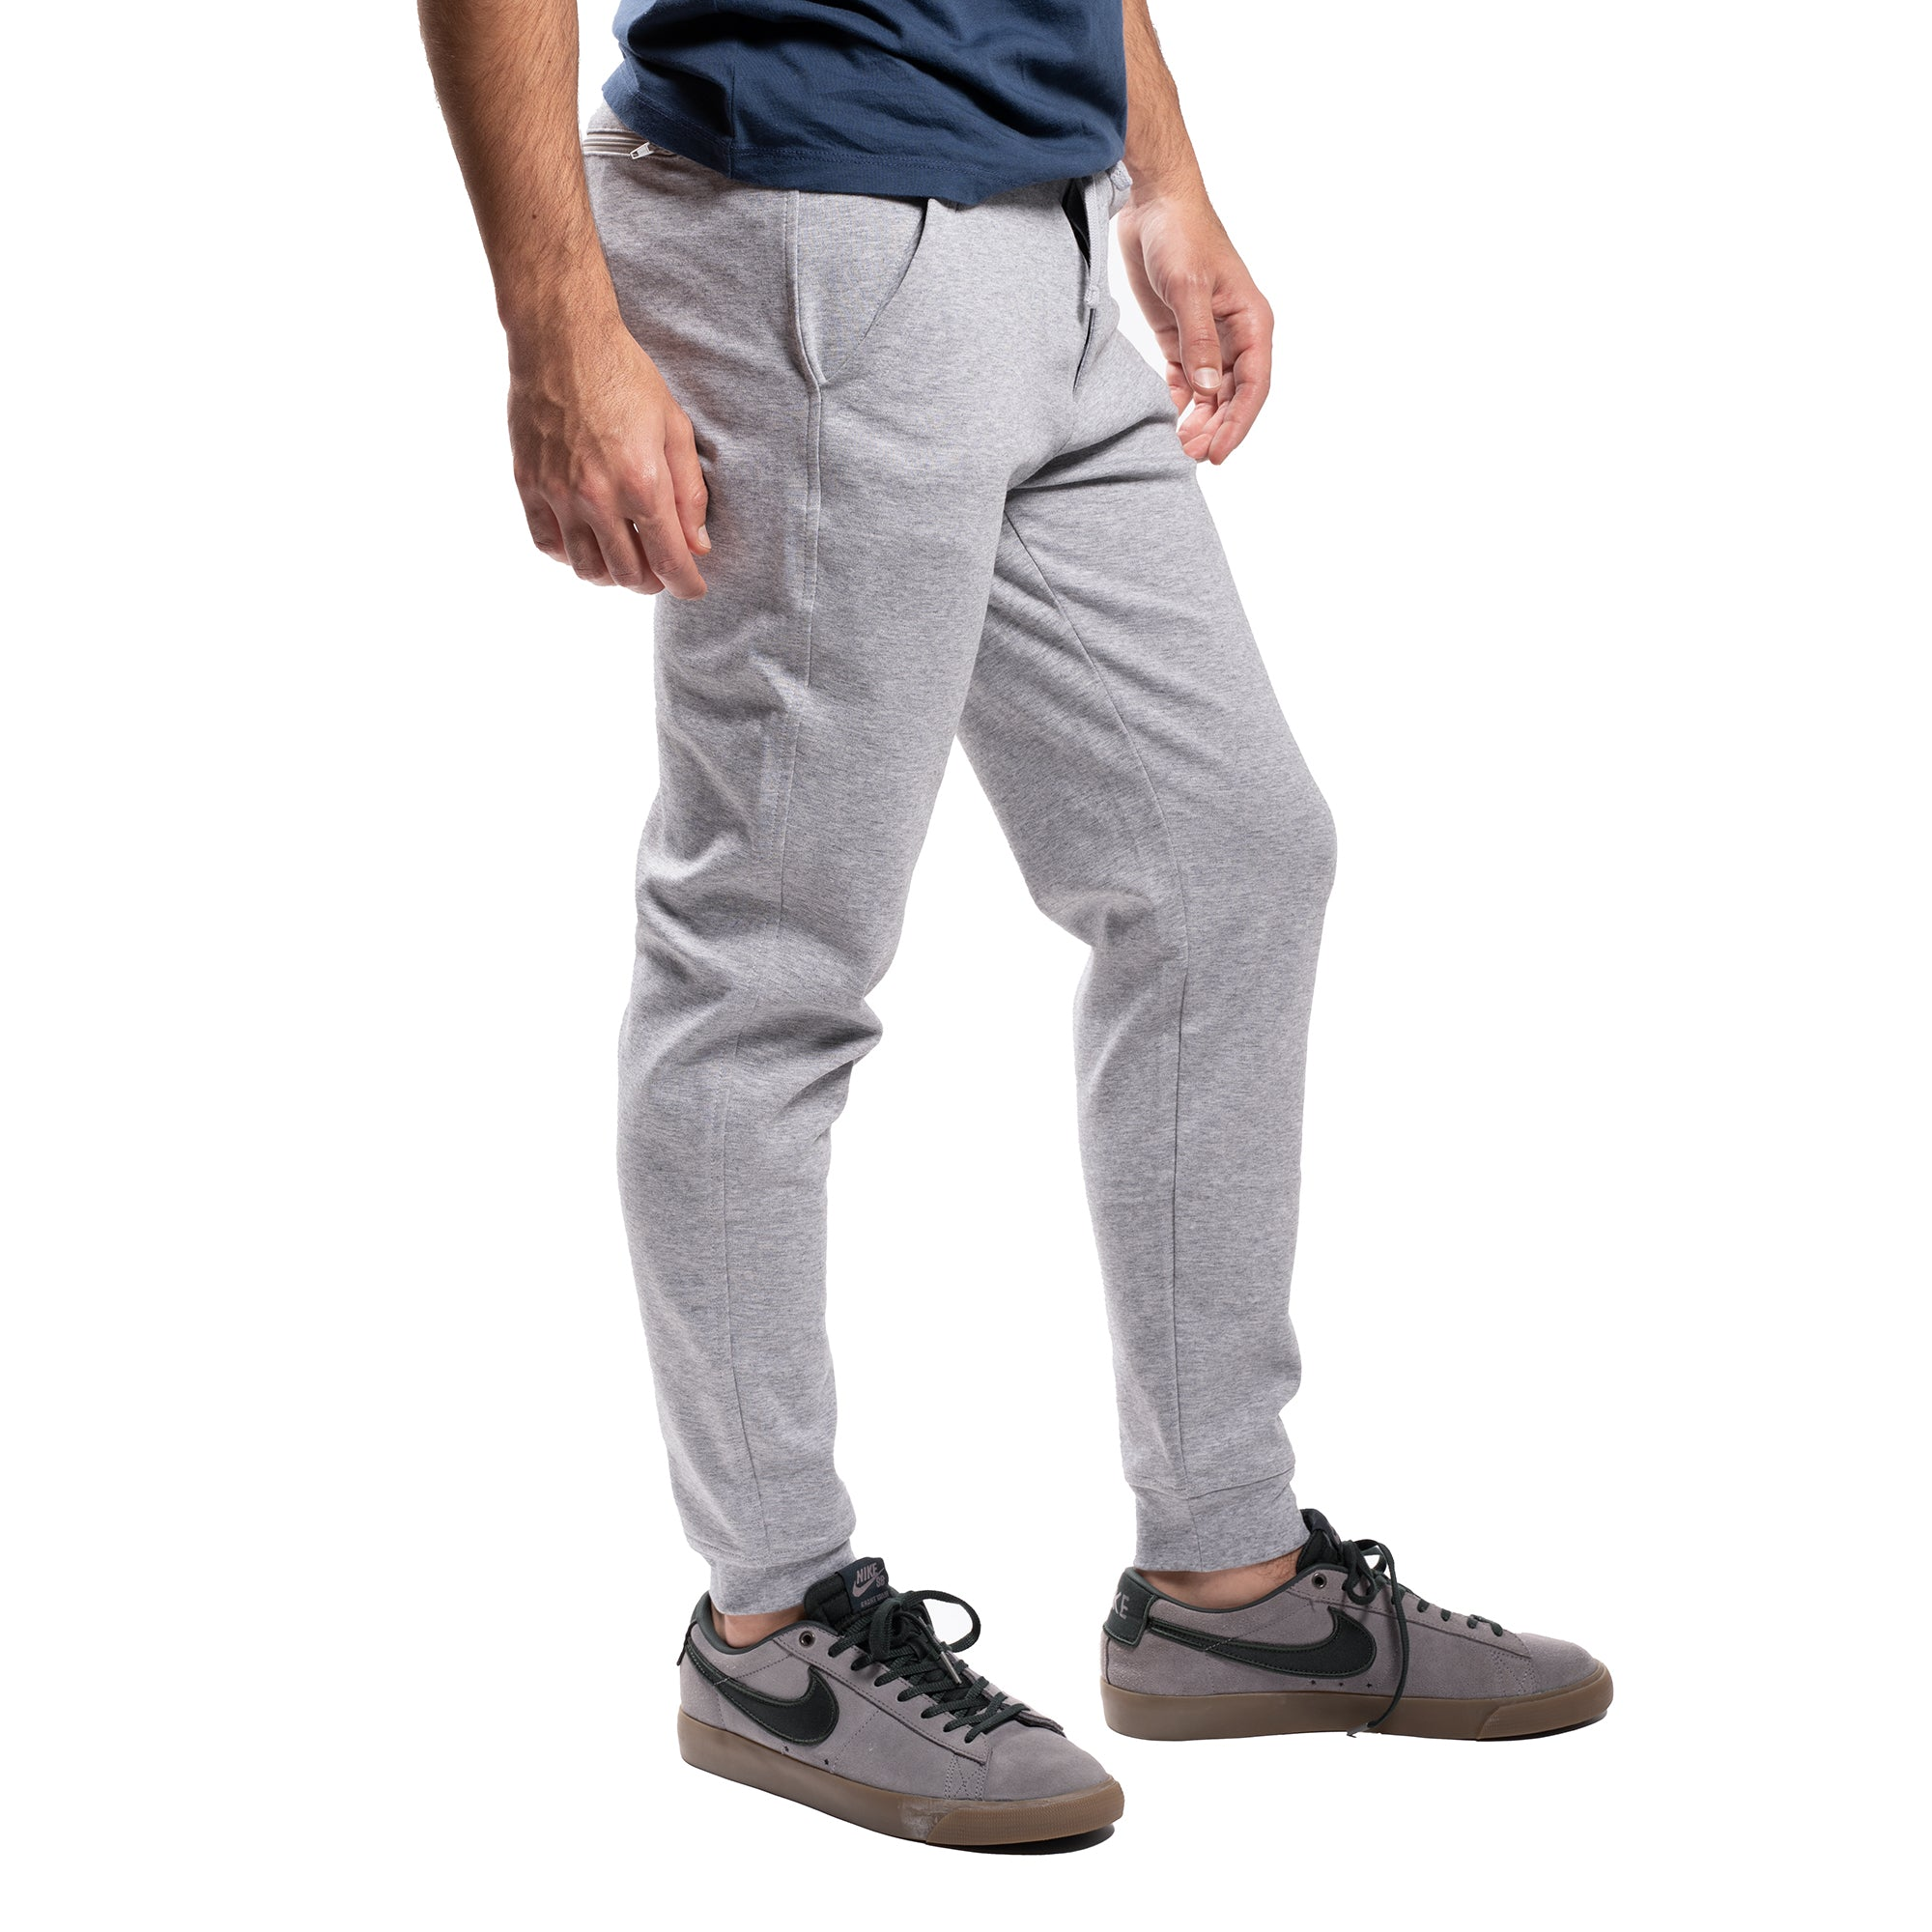 All Day Sweatpants - Heather Grey